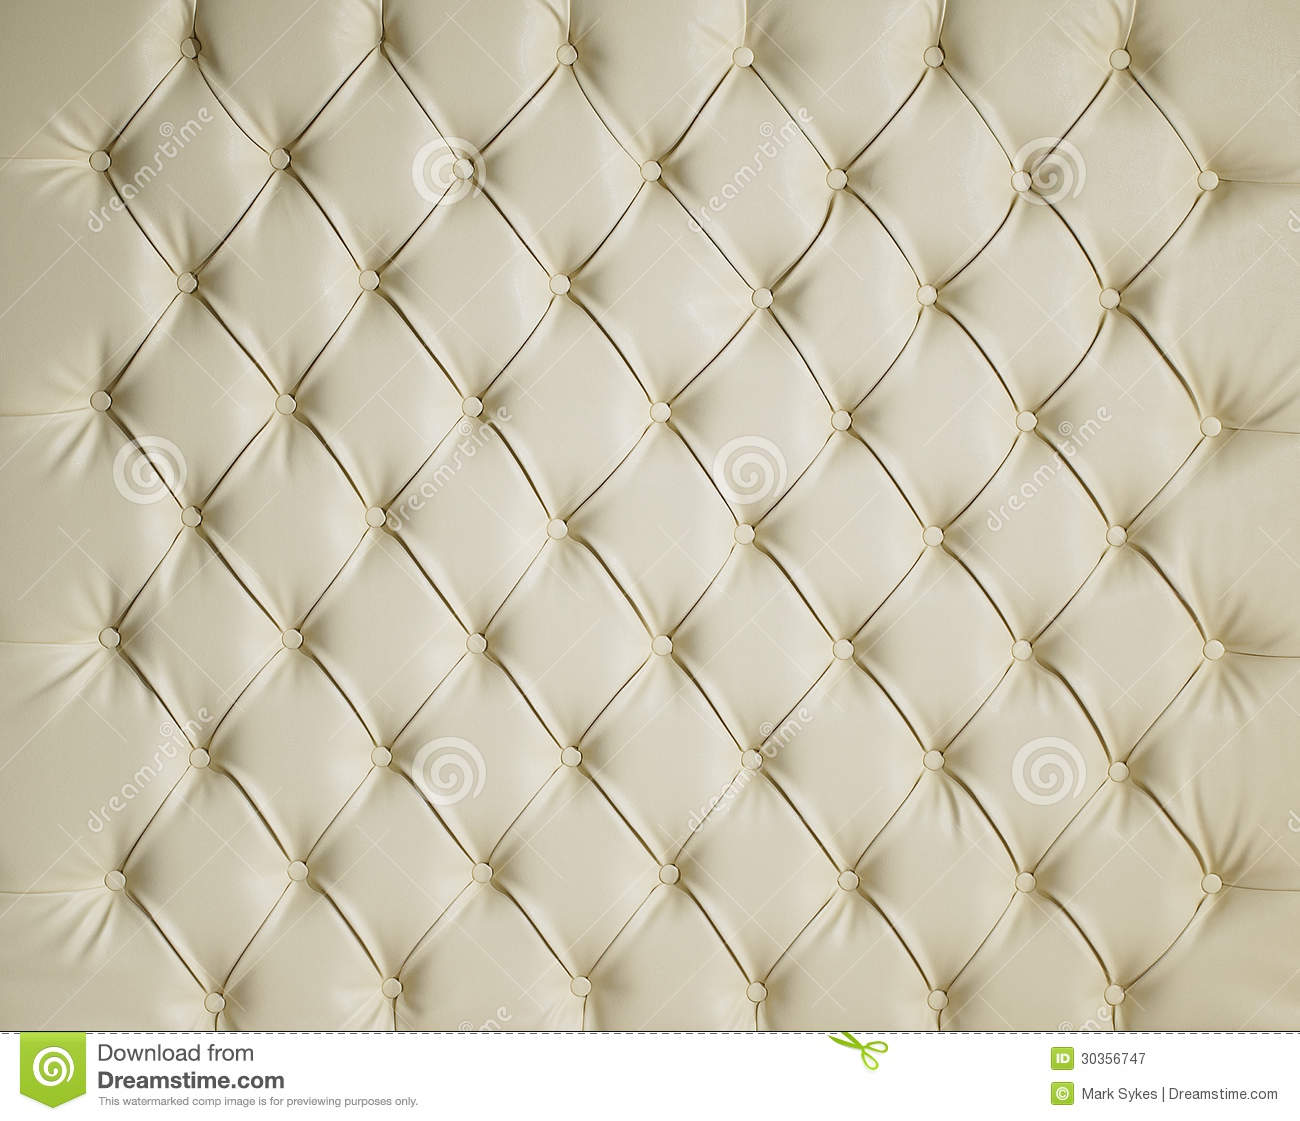 CREAM LEATHER PADDED STUDDED LUXURY BACKGROUND Royalty  : cream leather padded studded luxury background textured 30356747 from www.dreamstime.com size 1300 x 1121 jpeg 132kB